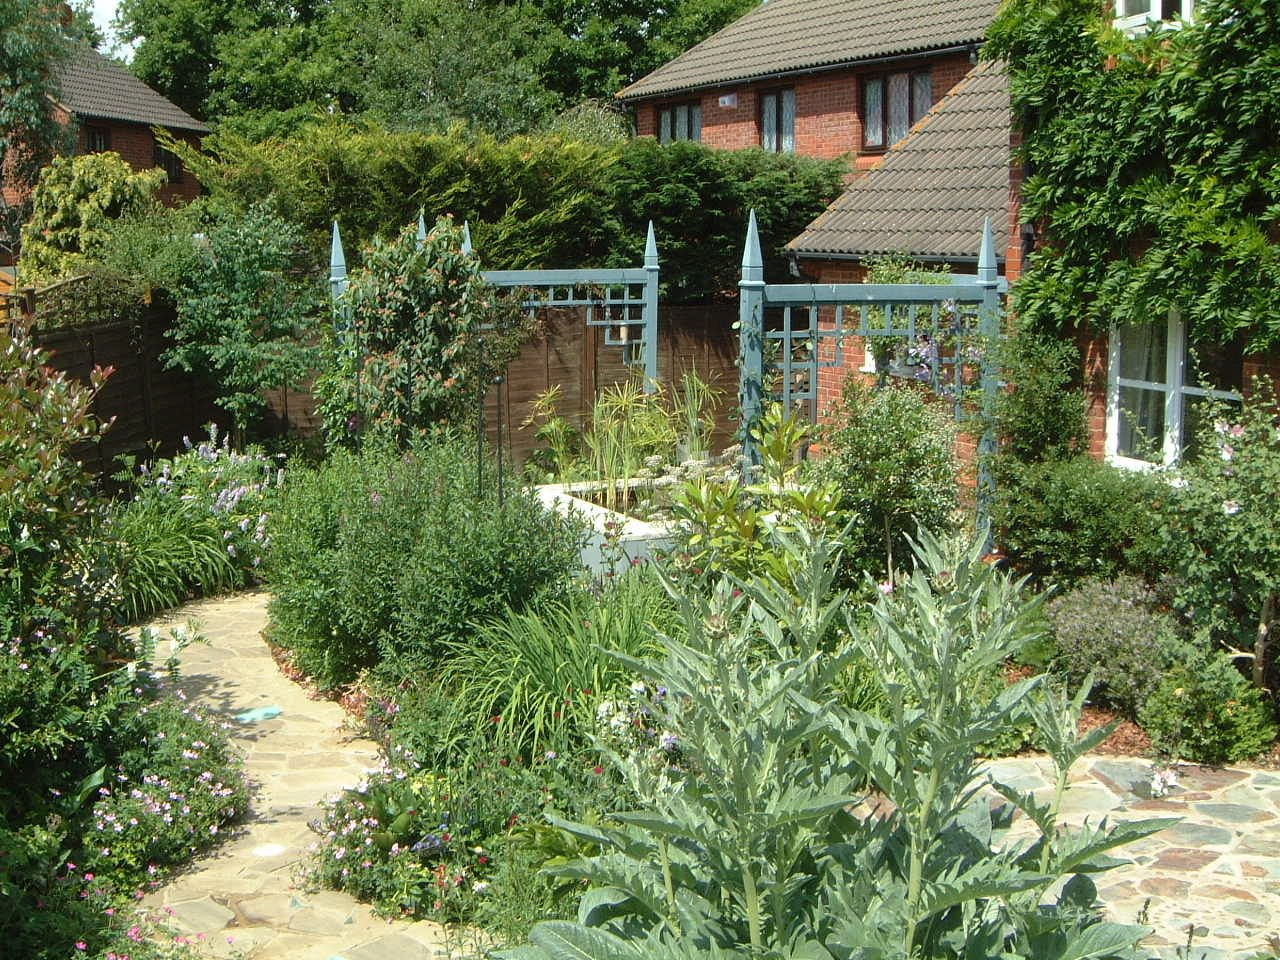 Gardens can work without grass